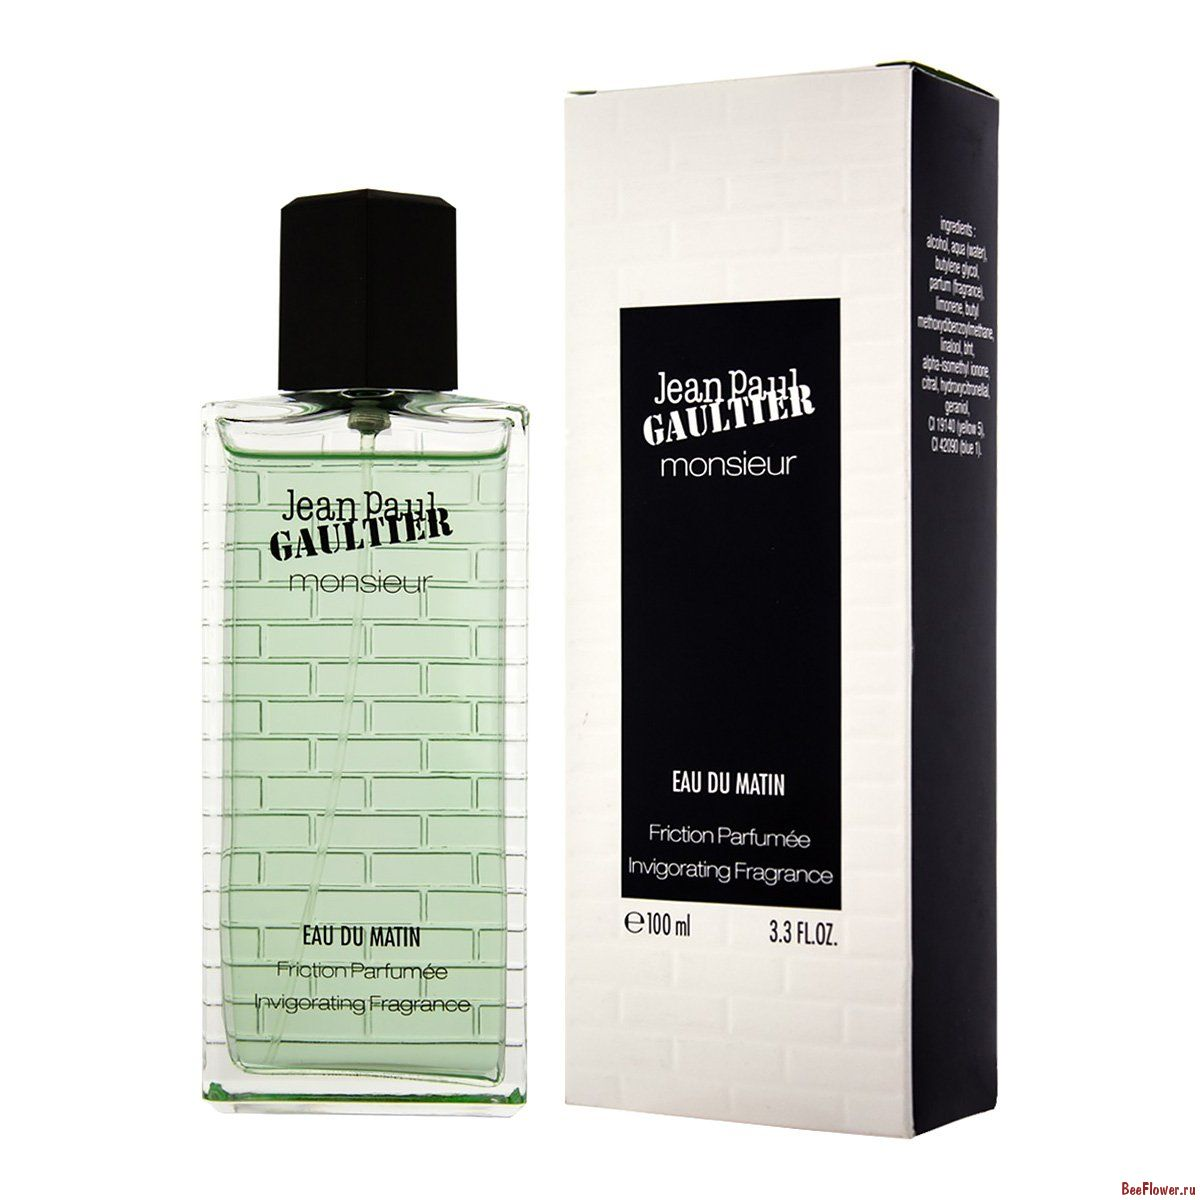 Jean Paul Gaultier - Monsieur. M-100